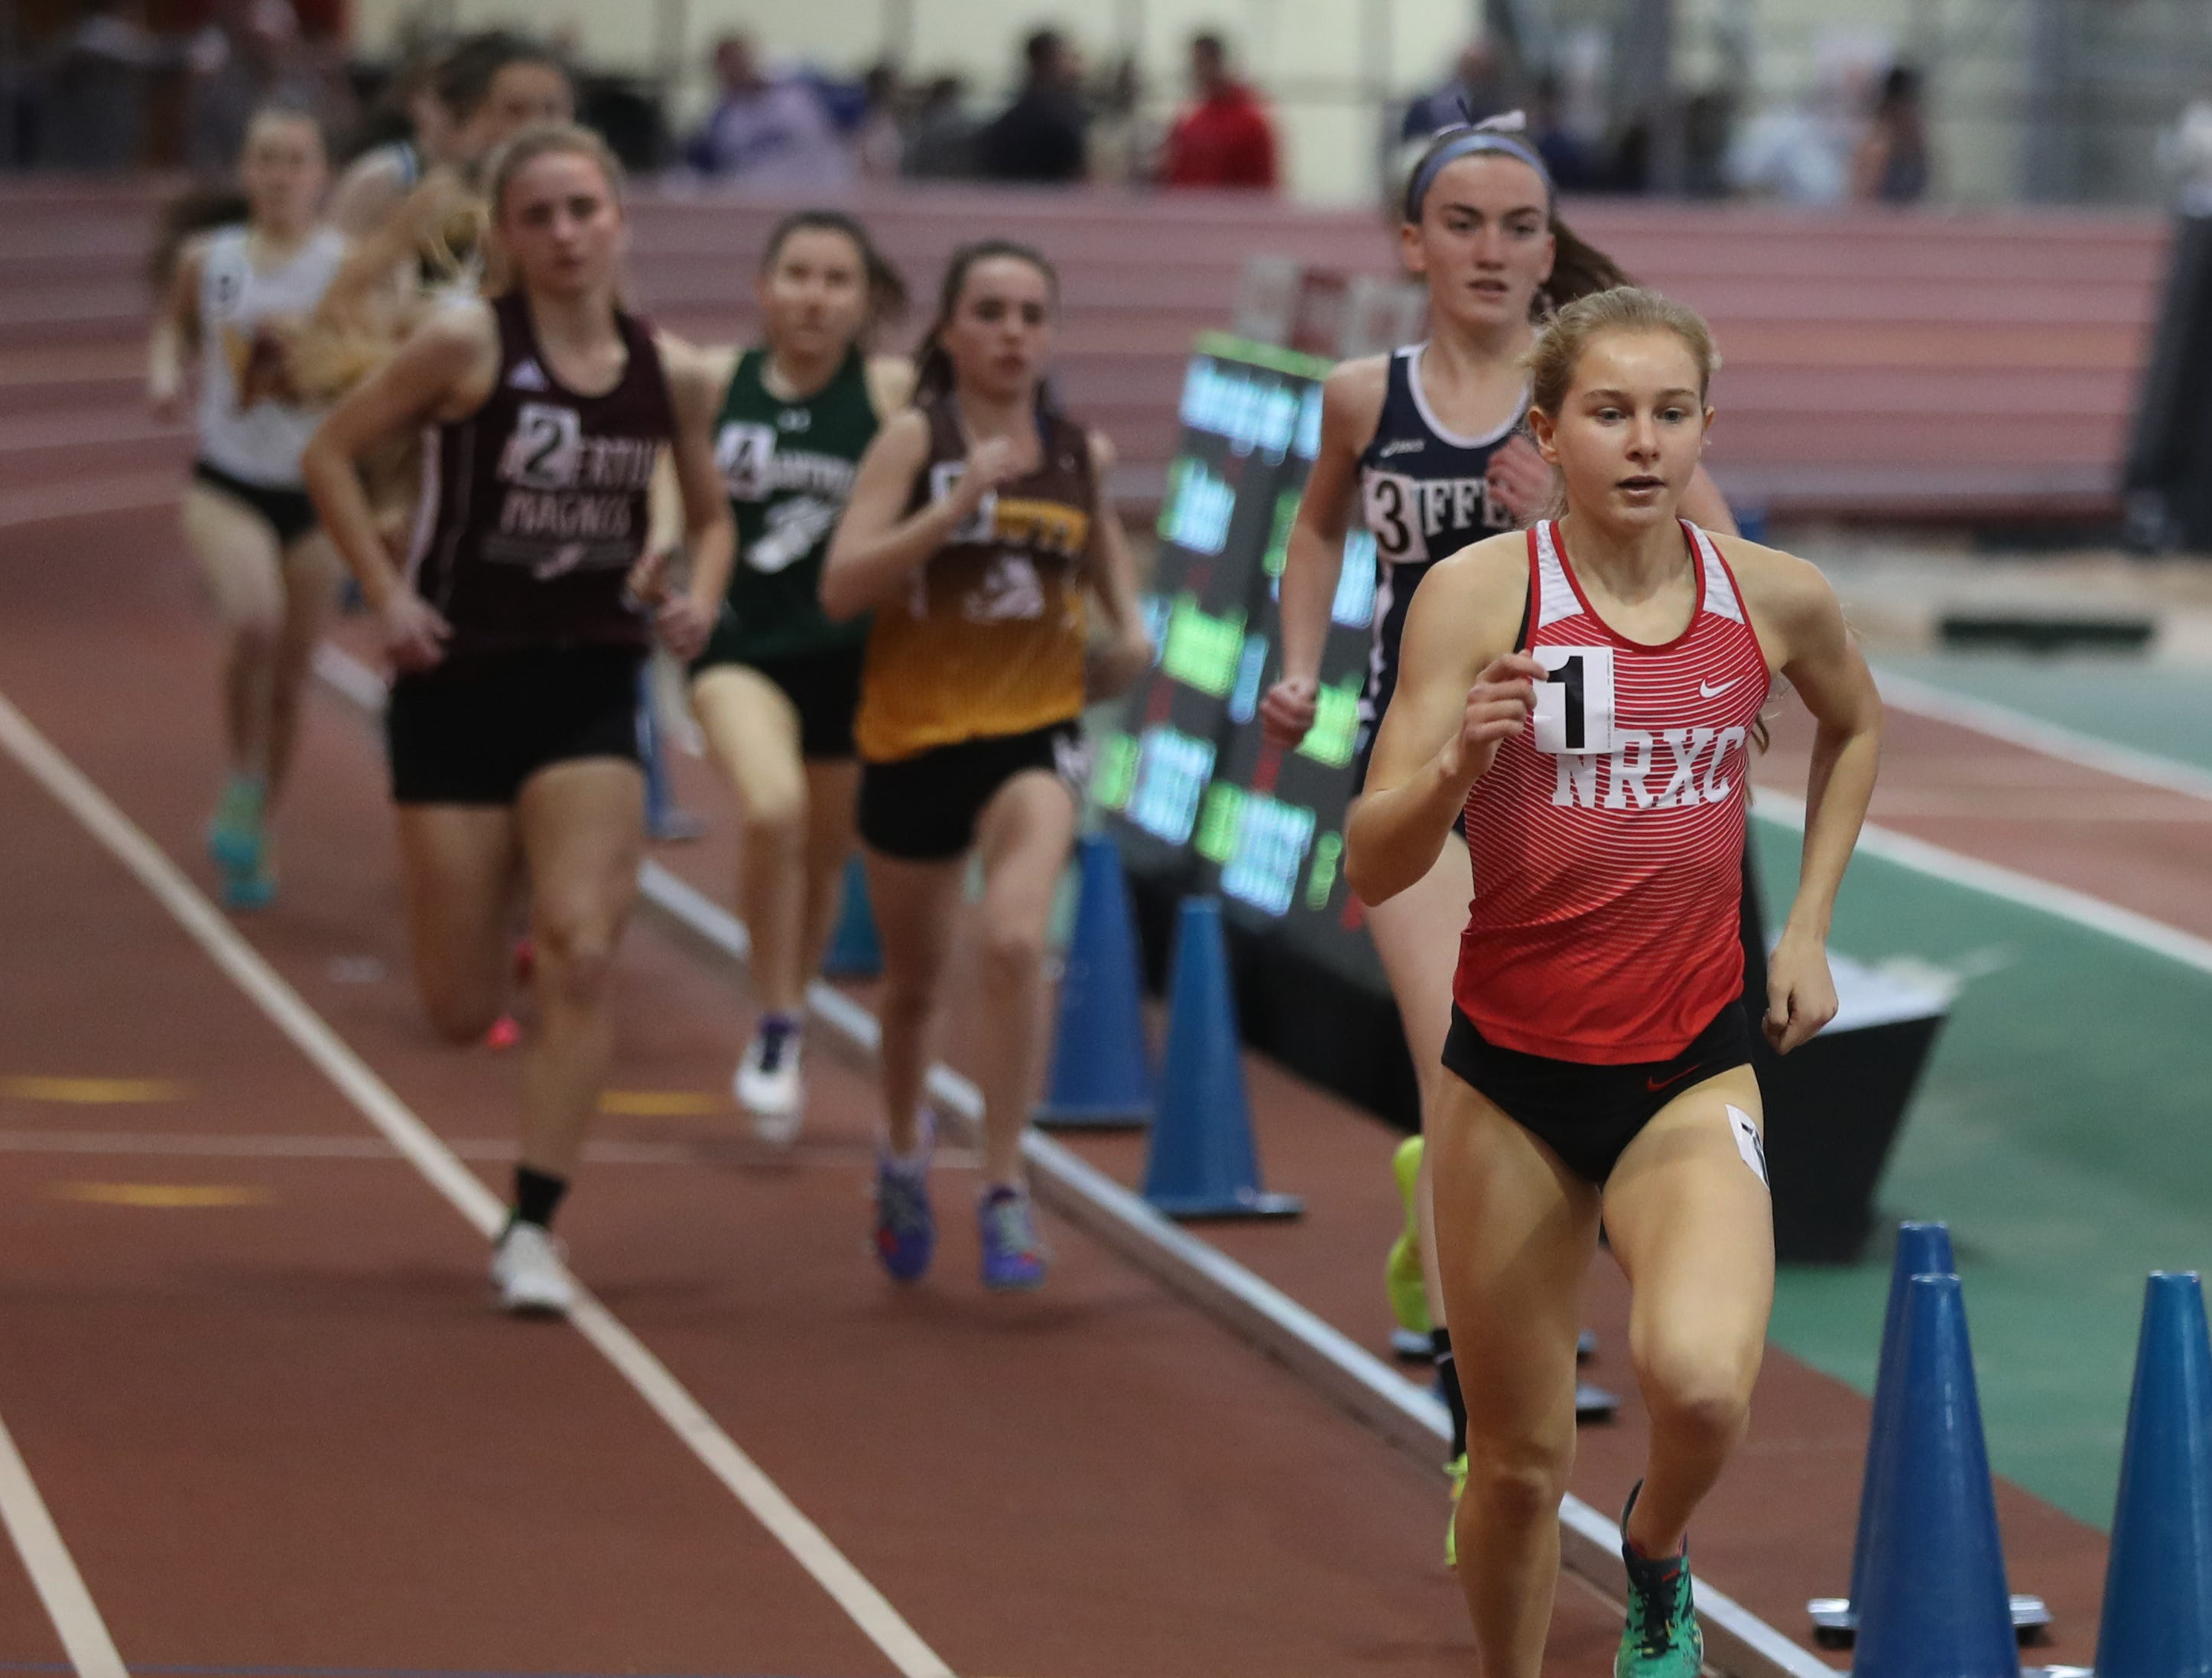 Katelyn Tuohy of North Rockland won the 1500 meter race in the Section 1 New York State Track and Field State Qualifier at the New Balance Armory in Manhattan Feb. 17, 2019. Tuohy won with a time of 4:27:34.